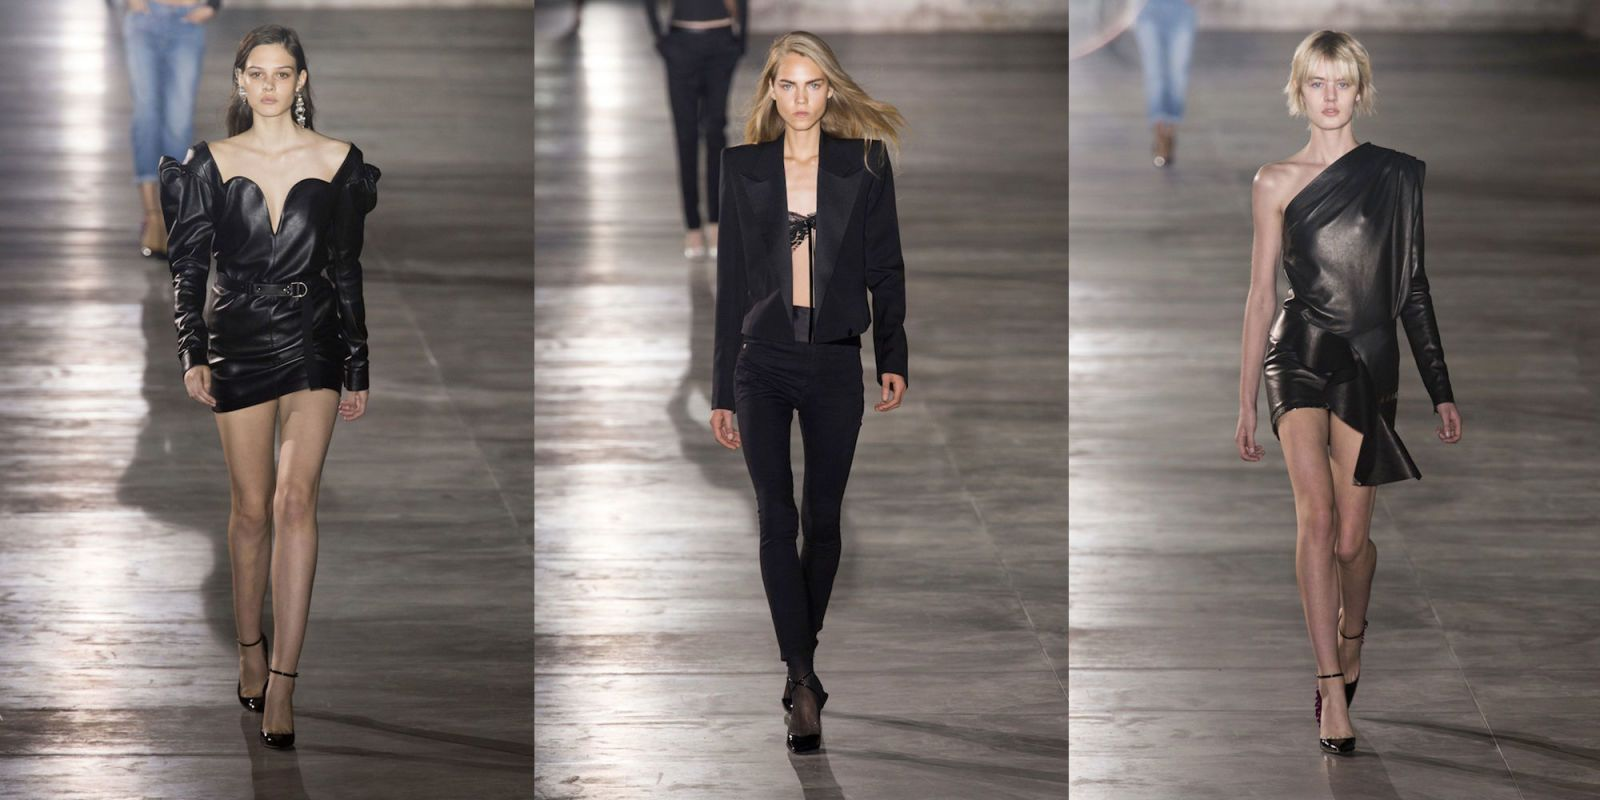 Paris Fashion Week SS17: Anthony Vaccarello's Yves Saint Laurent Debut Is Bringing Sexy Back